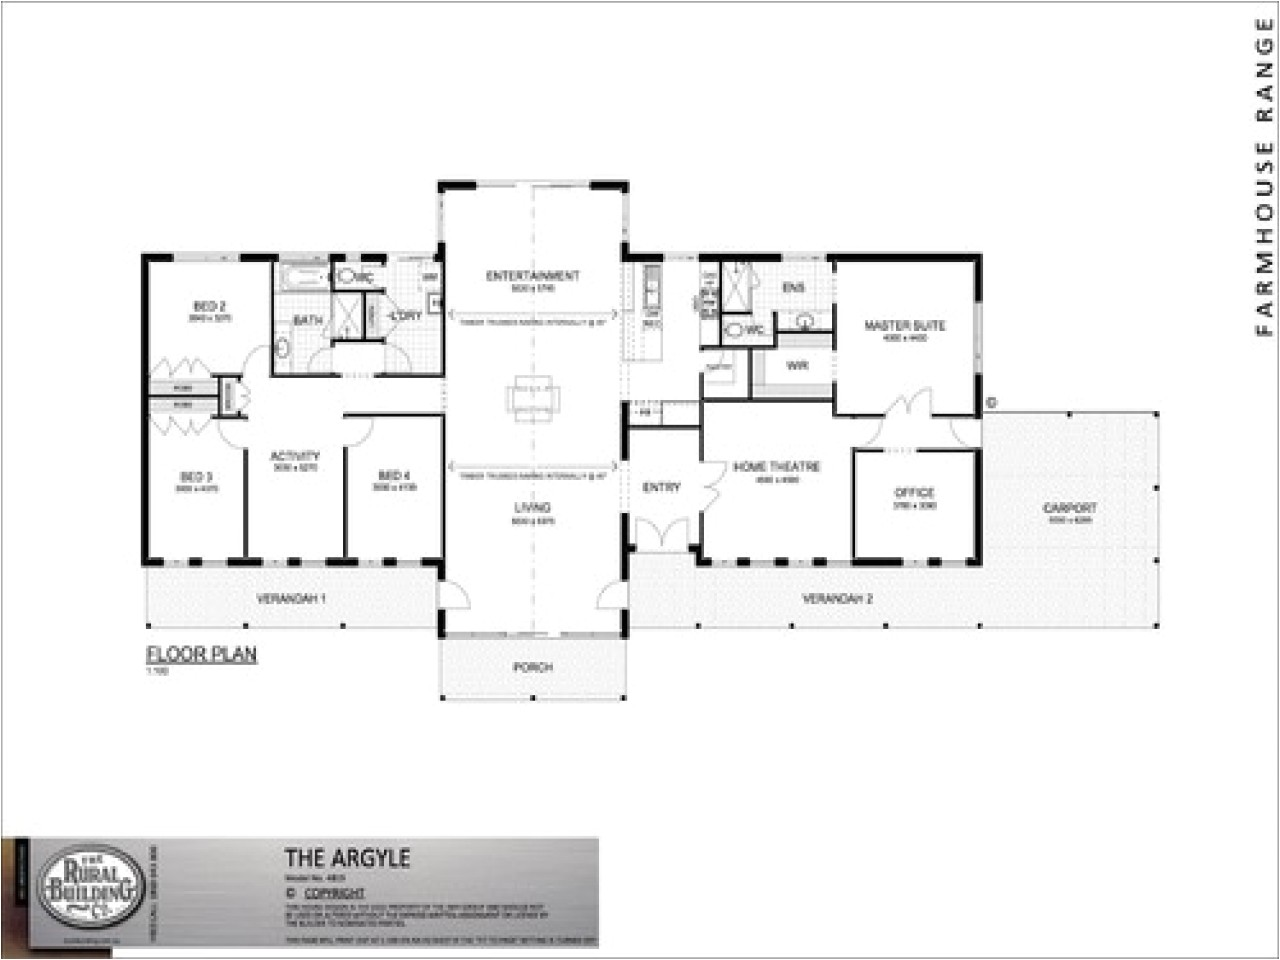 a6e41db344357493 5 bedroom one story open floor plan 5 bedroom house with pool